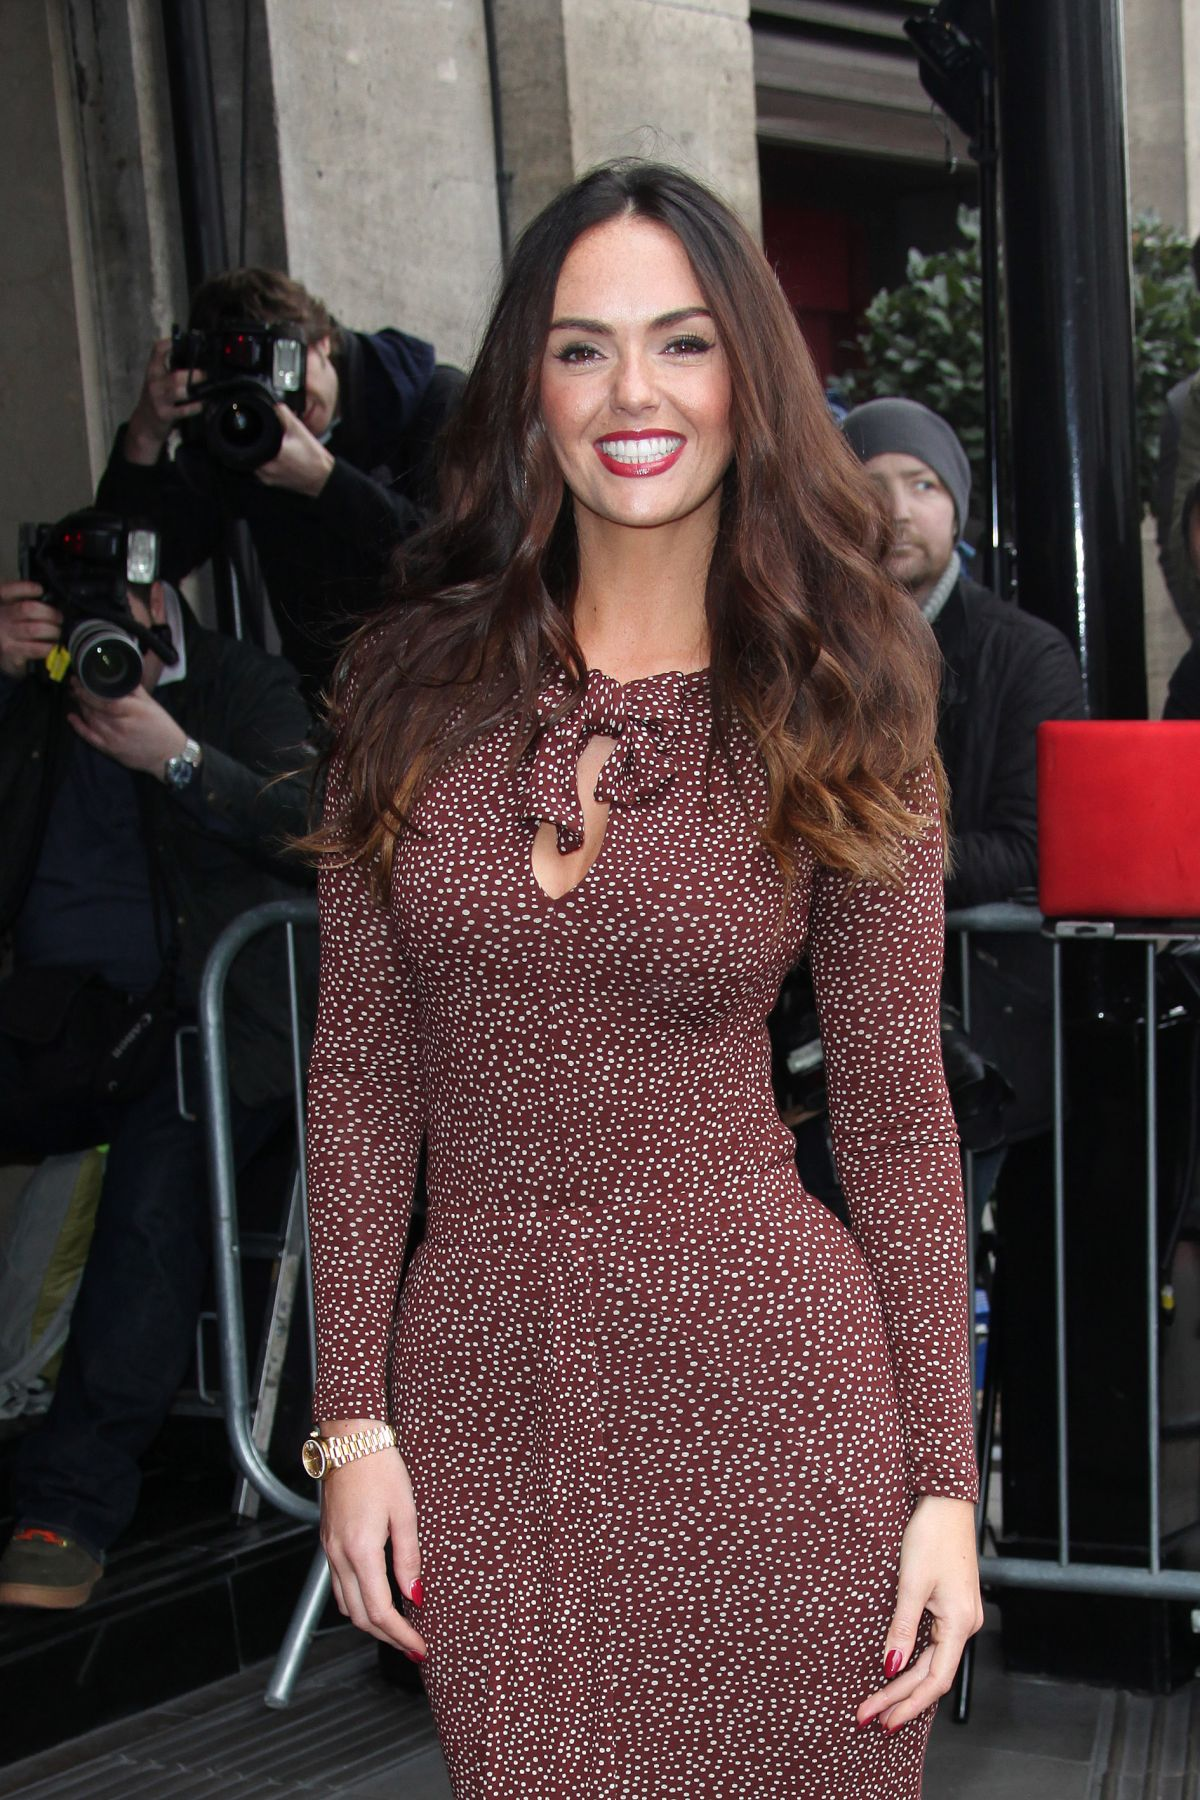 JENNIFER METCALFE at TRIC Awards 2014 in London